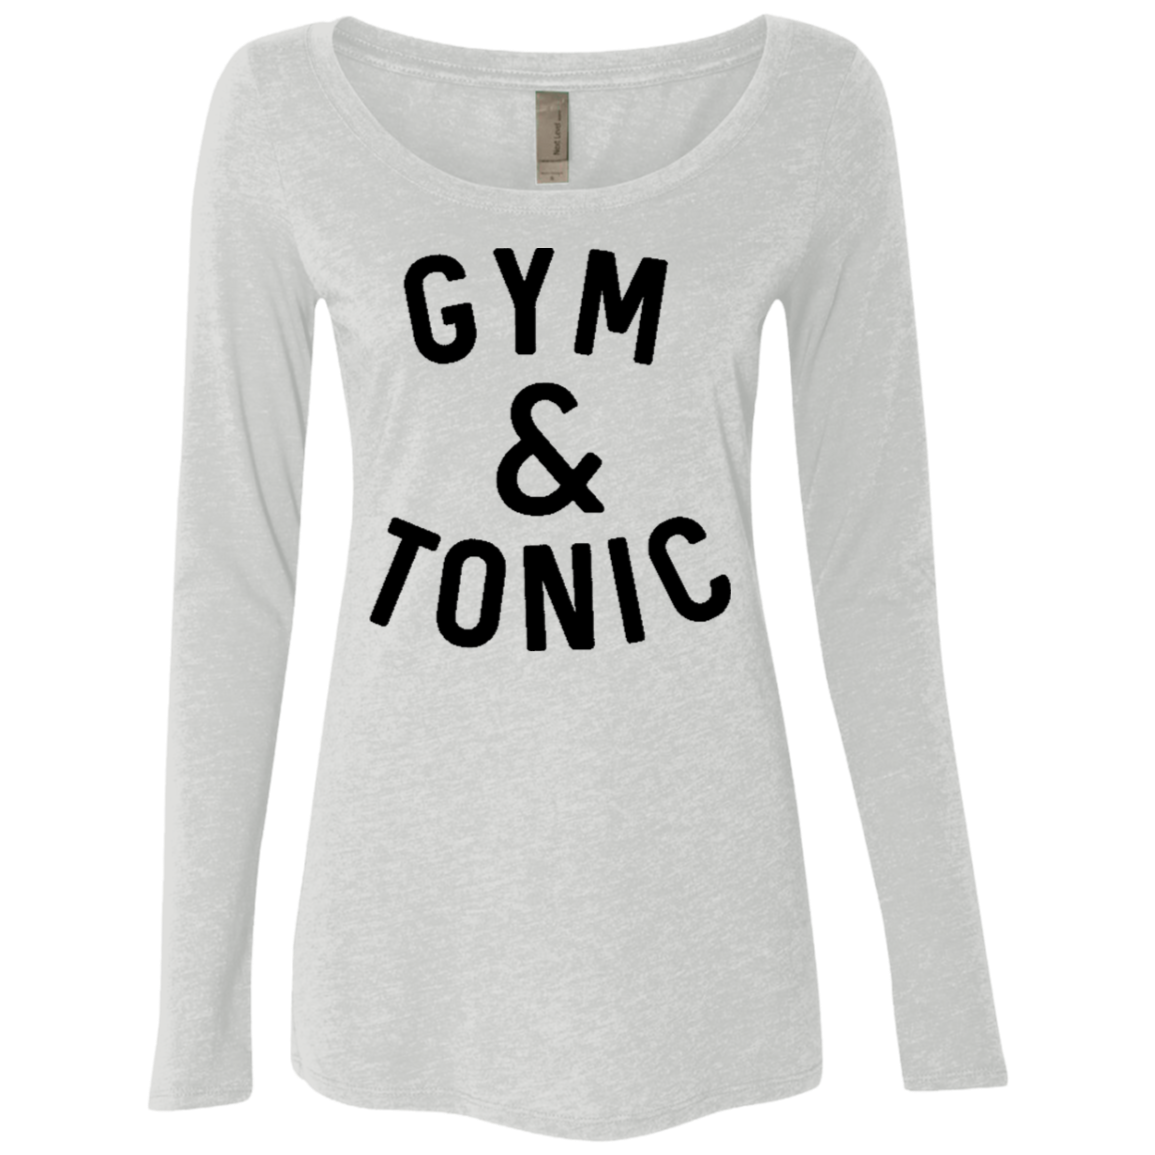 Gym and Tonic Women's Long Sleeve Tee